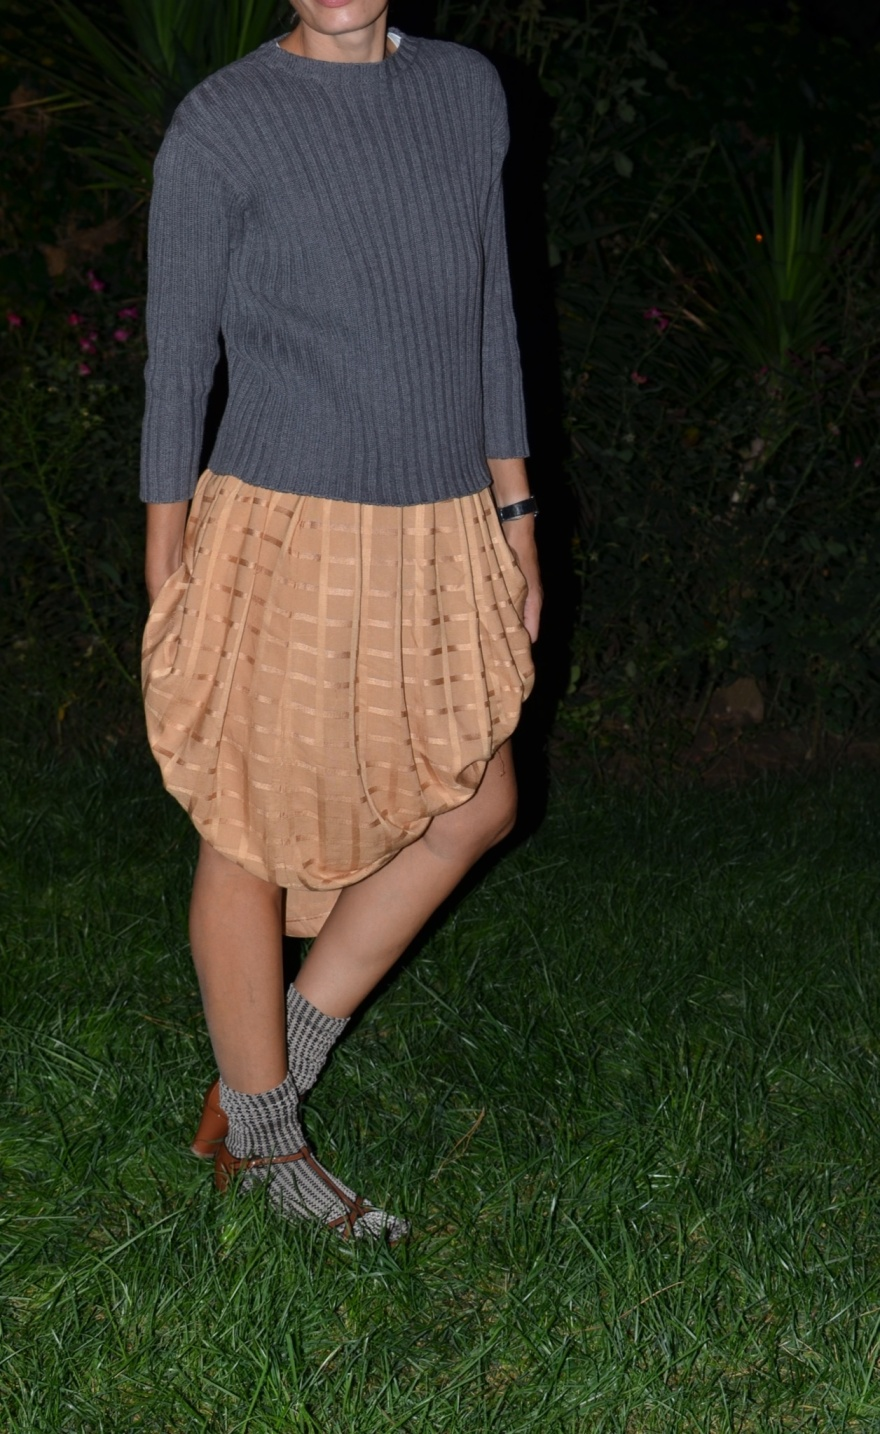 Vintage skirt, orange skirt, grey sweater, new in mysouldress, vintage style, Marni shoes, Marni sandals, Emilio Cavallini socks, Anastasia style, Florence, barbecue style, look per un barbecue, fashion blog, new look, italian fashion blogger